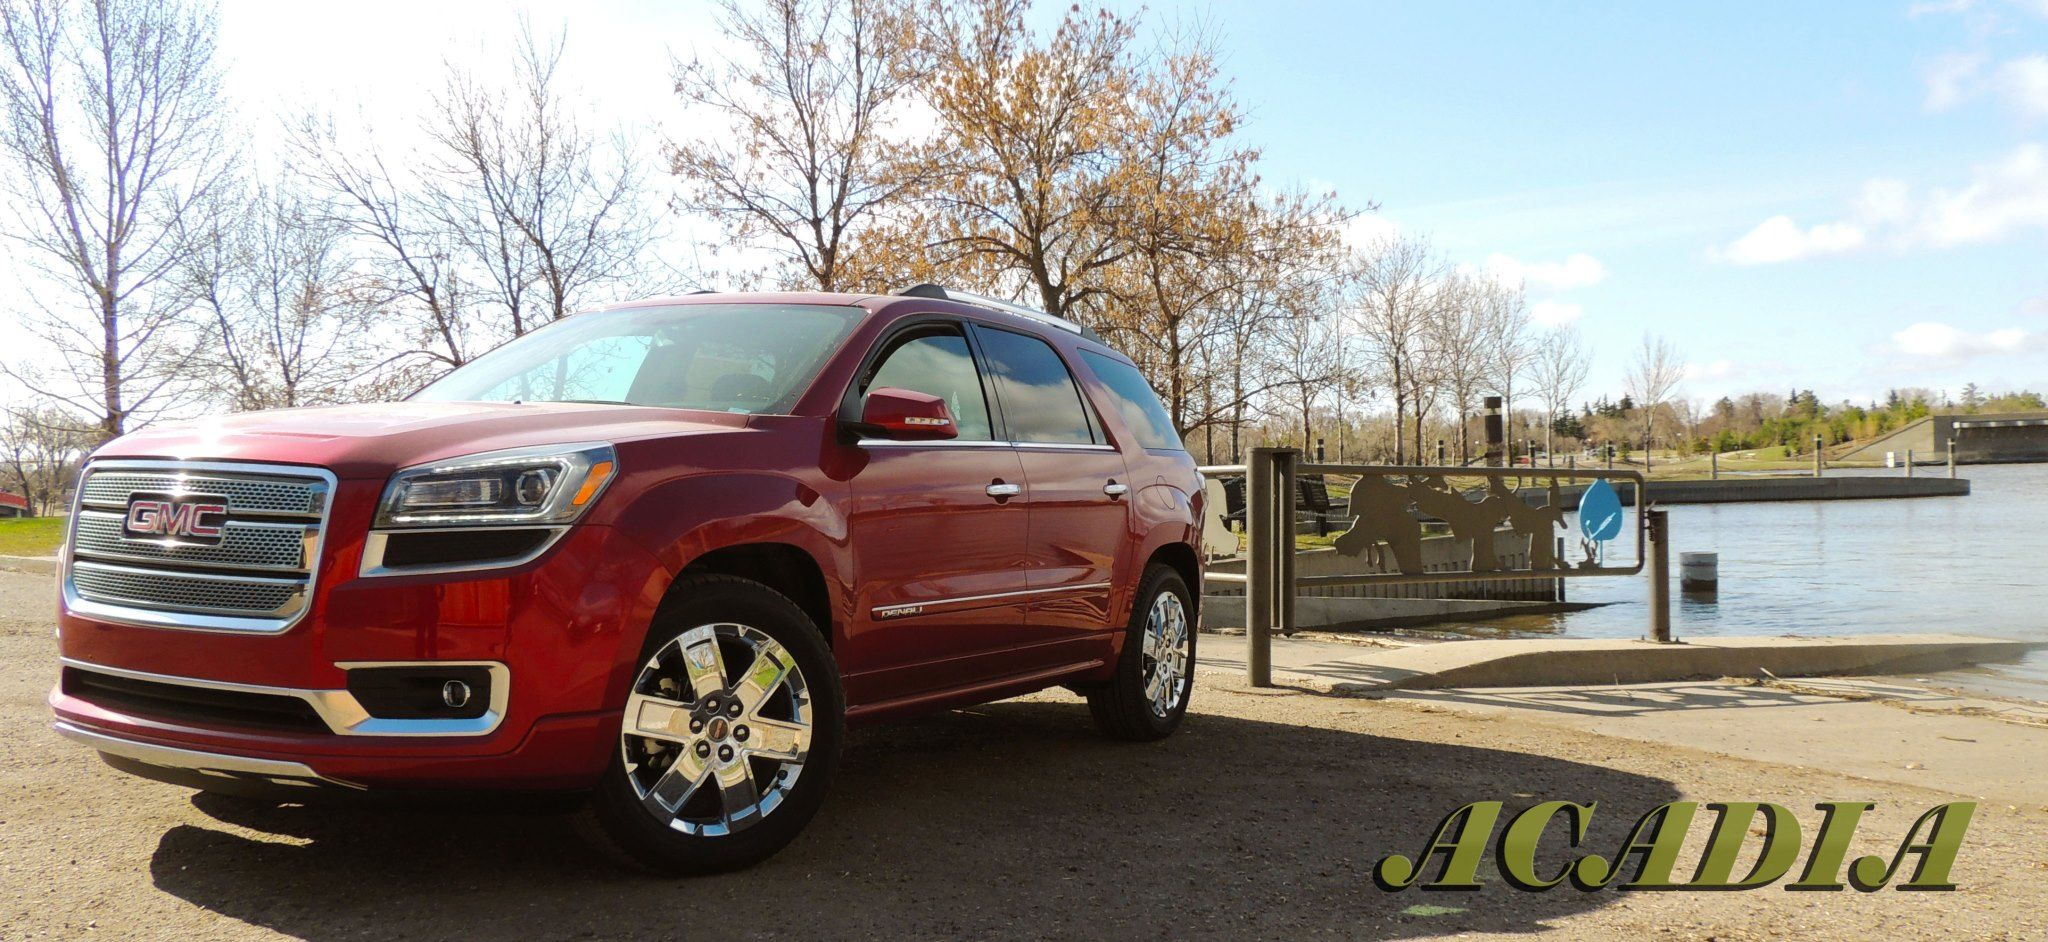 The Gmc Acadia Stands Out With Its New And Amazing 2013 Body Style